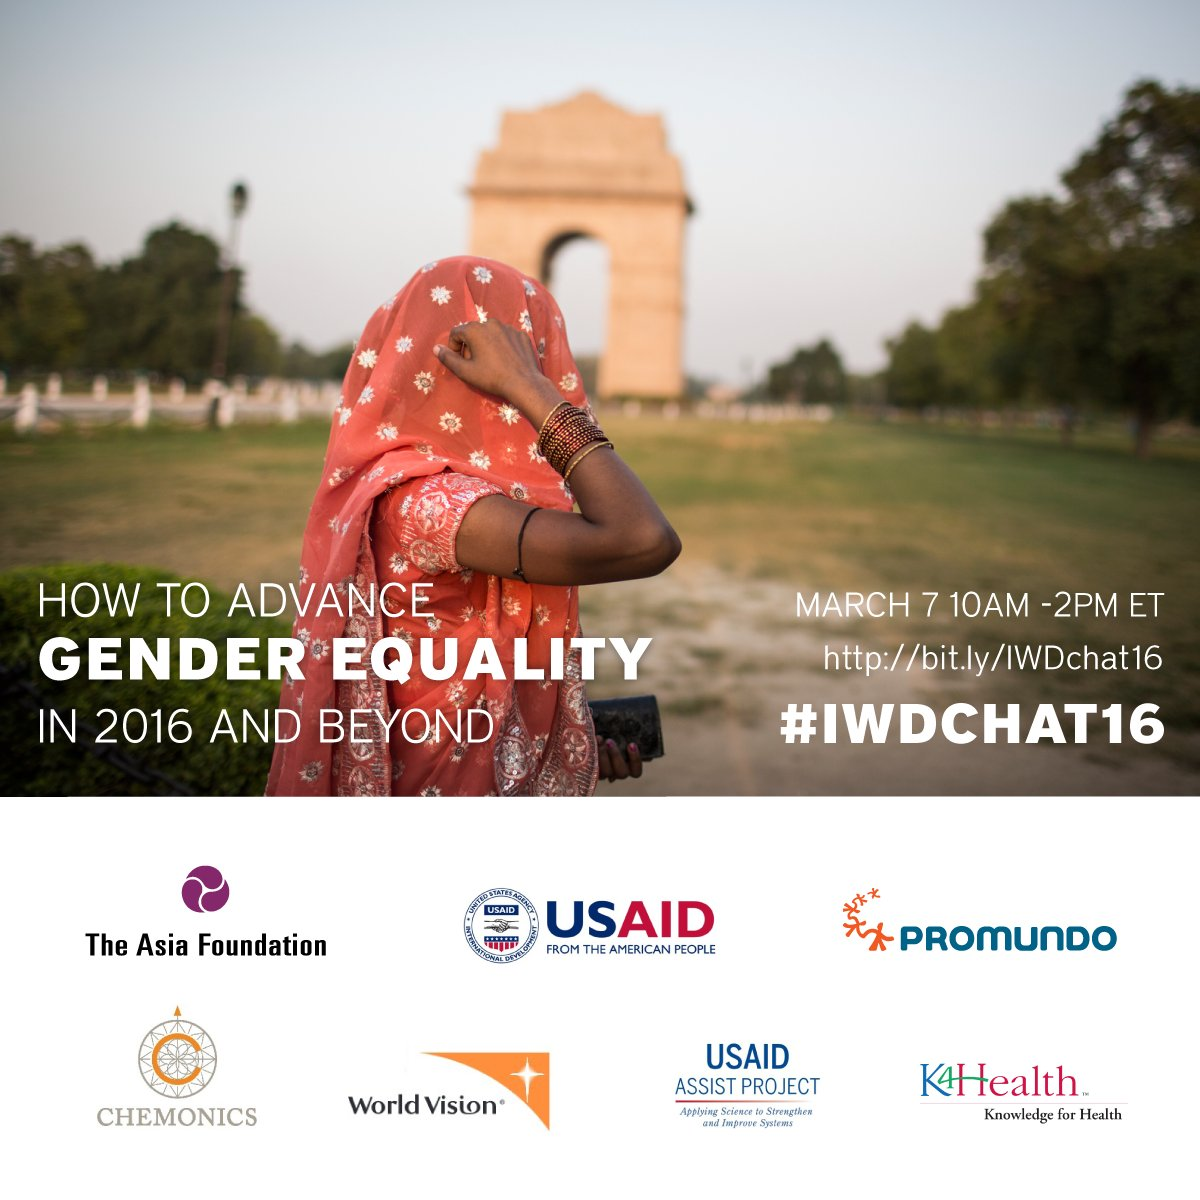 """Save the date for live March 7 #IWDchat16 on """"How to Advance Gender Equality in 2016 and Beyond"""" w/ 6 partners. https://t.co/Iszjxy9M3i"""